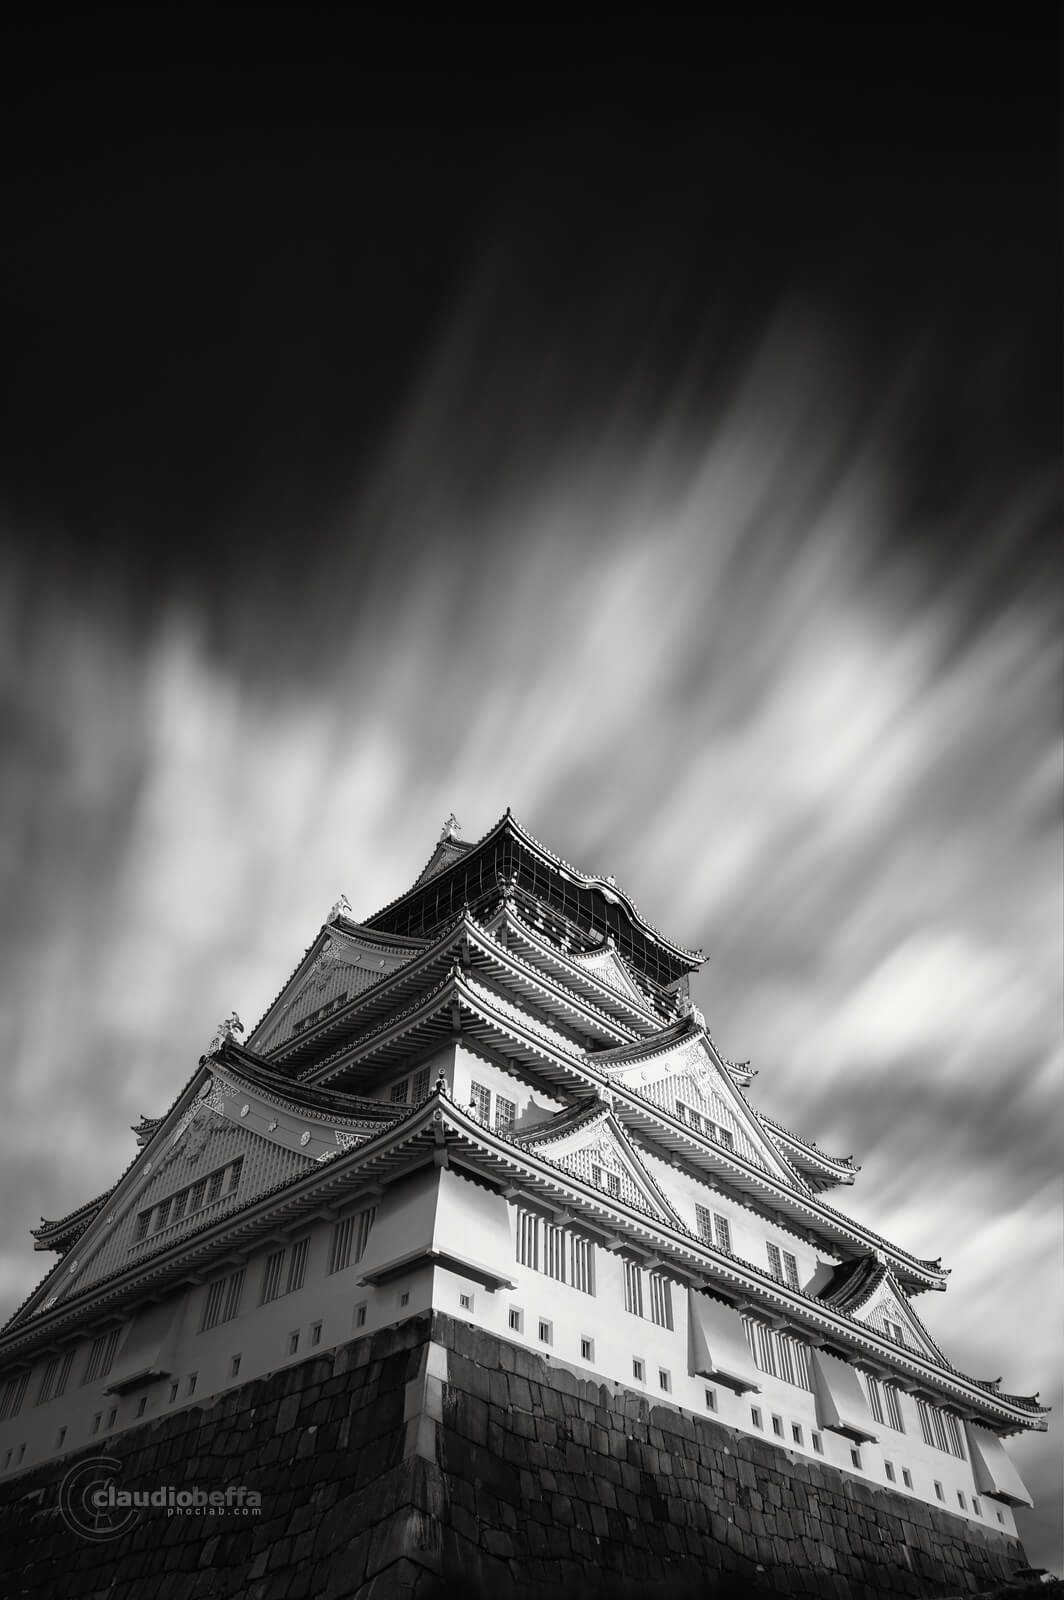 Fortress, Fortress of the sky, Castle, Japan, Osaka, Travel